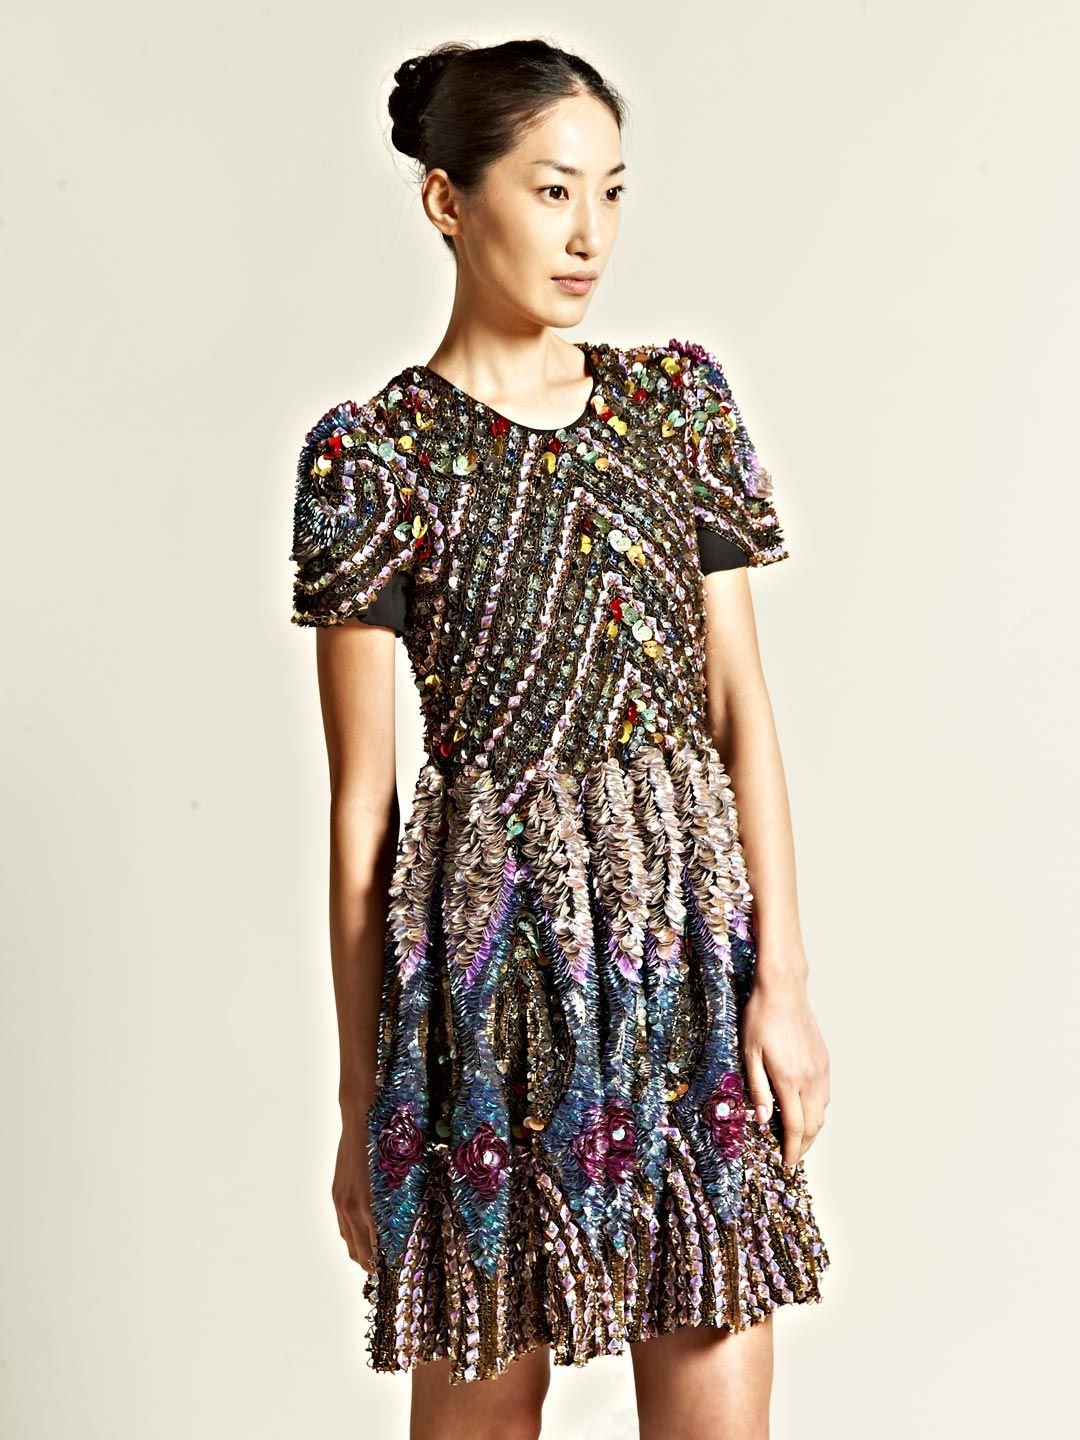 James long encrusted dress up pinterest sequins clothes and